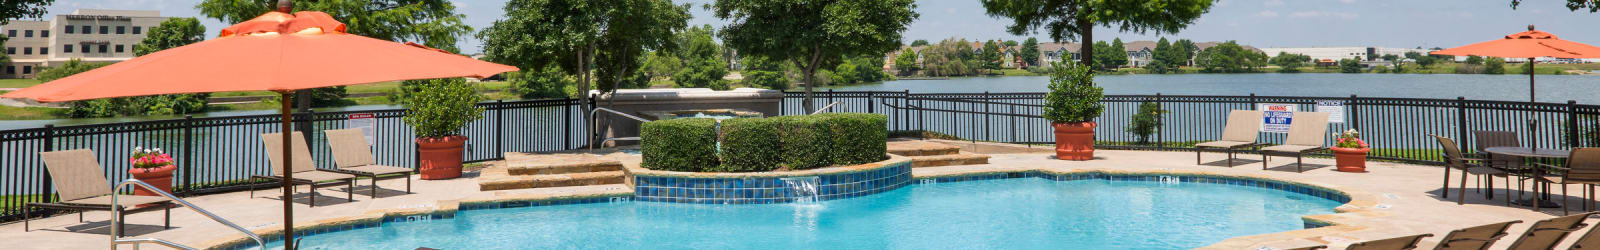 Schedule a tour at Crescent Cove at Lakepointe in Lewisville, Texas